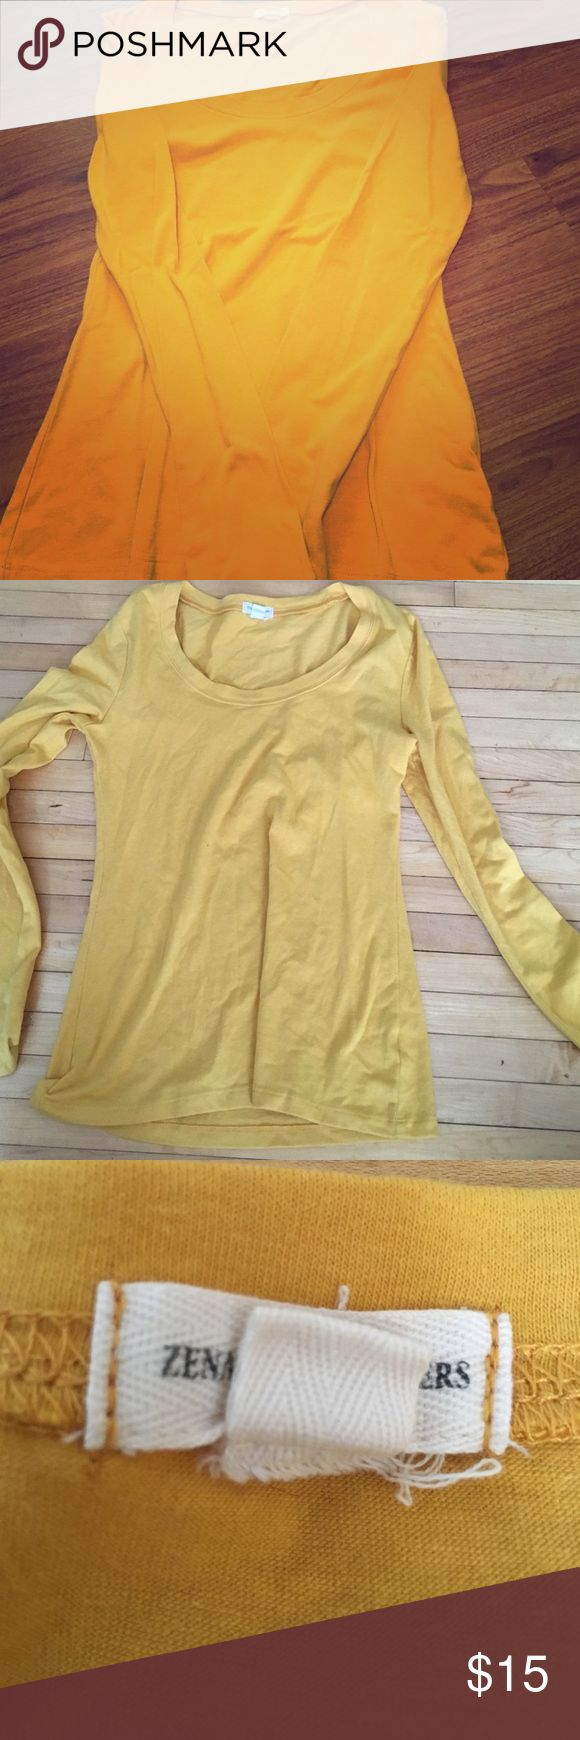 Zenana Outfitters Women's Medium Zenana Outfitters size medium women's goldenrod yellow long sleeve top Zenana Outfitters Tops Tees - Long Sleeve